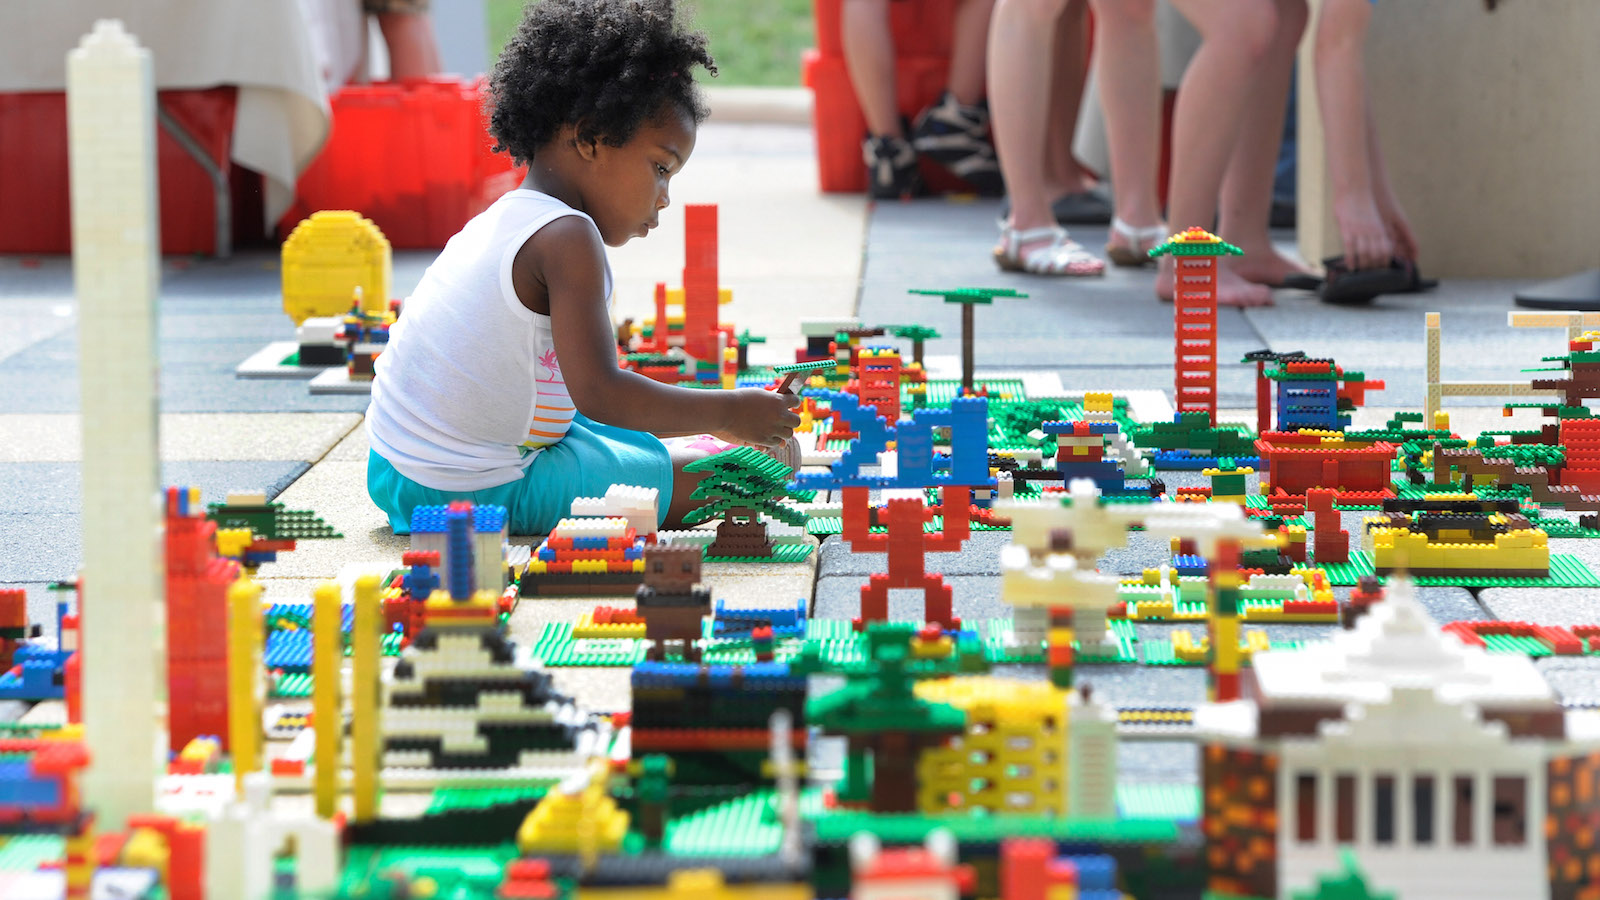 IMAGE DISTRIBUTED FOR LEGO - LEGO Maker Glo Banks, of Washington, helps build a 30-by-50-foot map of the United States at the National Maker Faire at the University of the District of Columbia in Washington, Saturday, June 13, 2015. Thousands of LEGO makers used the iconic bricks to build the LEGO Maker Nation.